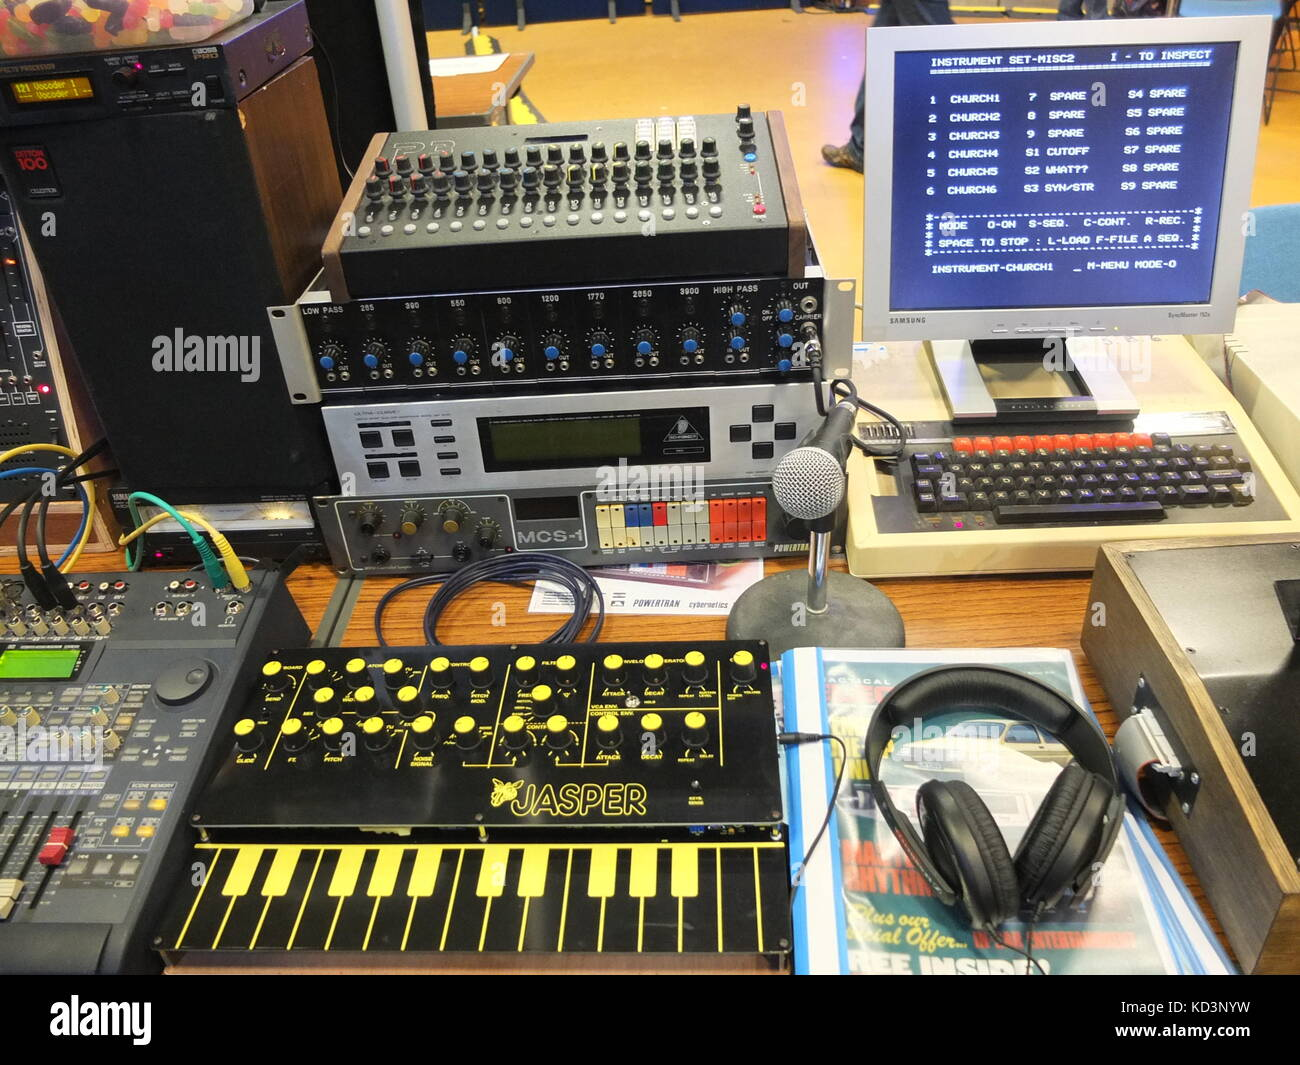 Various synthesizer and electronic music gear on display at Synthfest UK, Octagon Centre, University of Sheffield - Stock Image